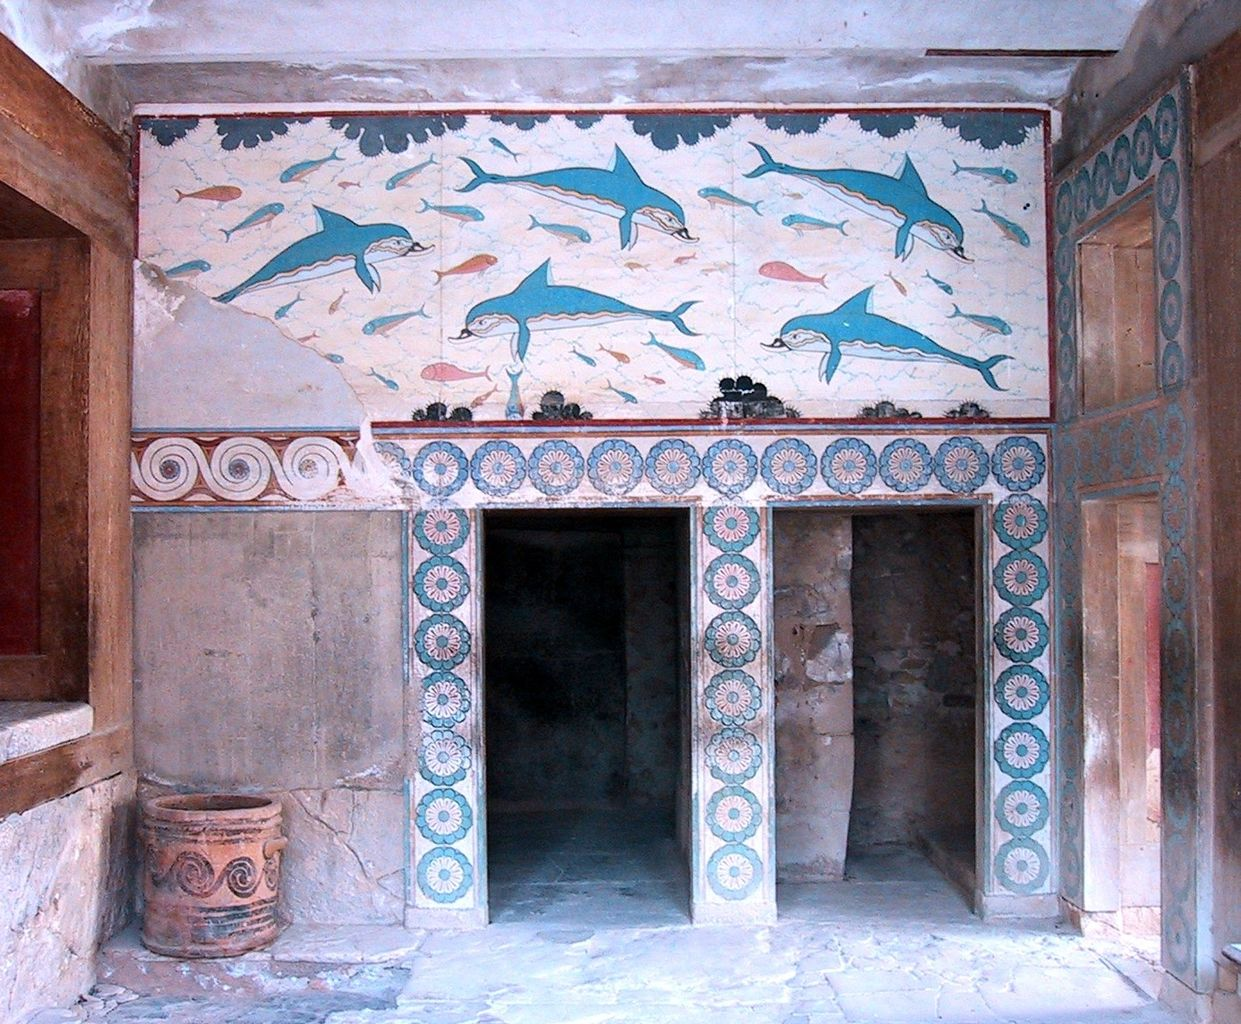 file dolphin mural wikimedia commons